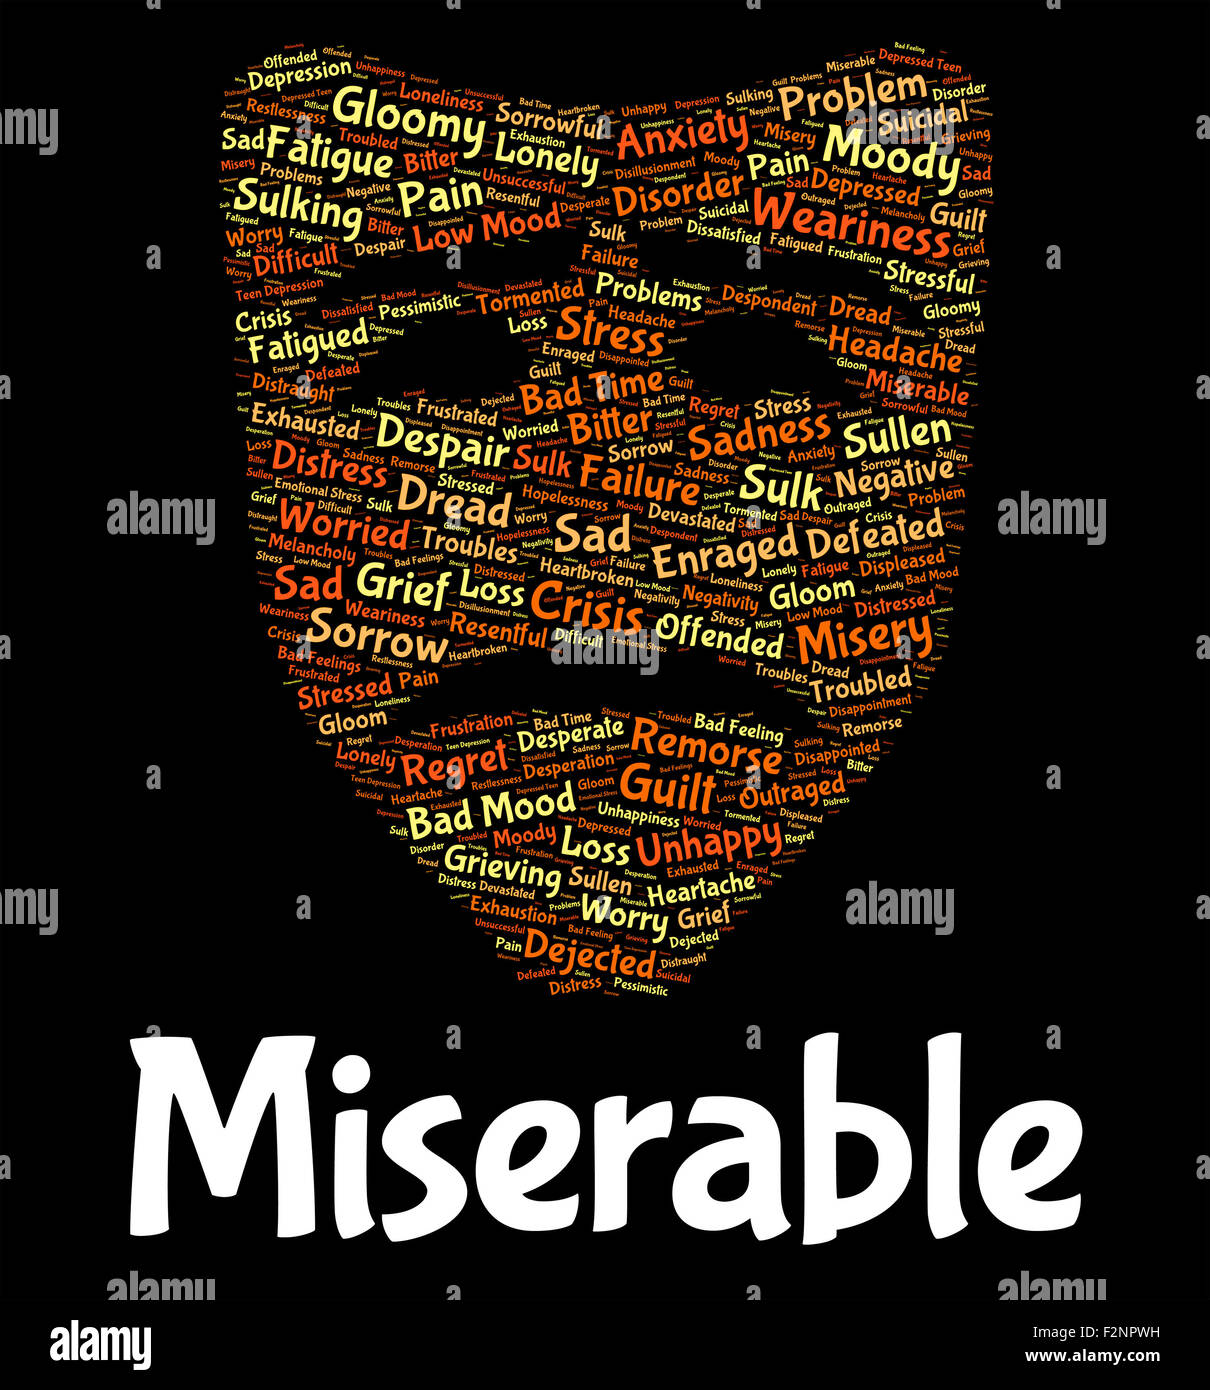 Miserable Word Meaning Grief Stricken And Wretched Stock Photo Alamy If you are desperate , you are in such a bad situation that you are willing to try. https www alamy com stock photo miserable word meaning grief stricken and wretched 87760109 html